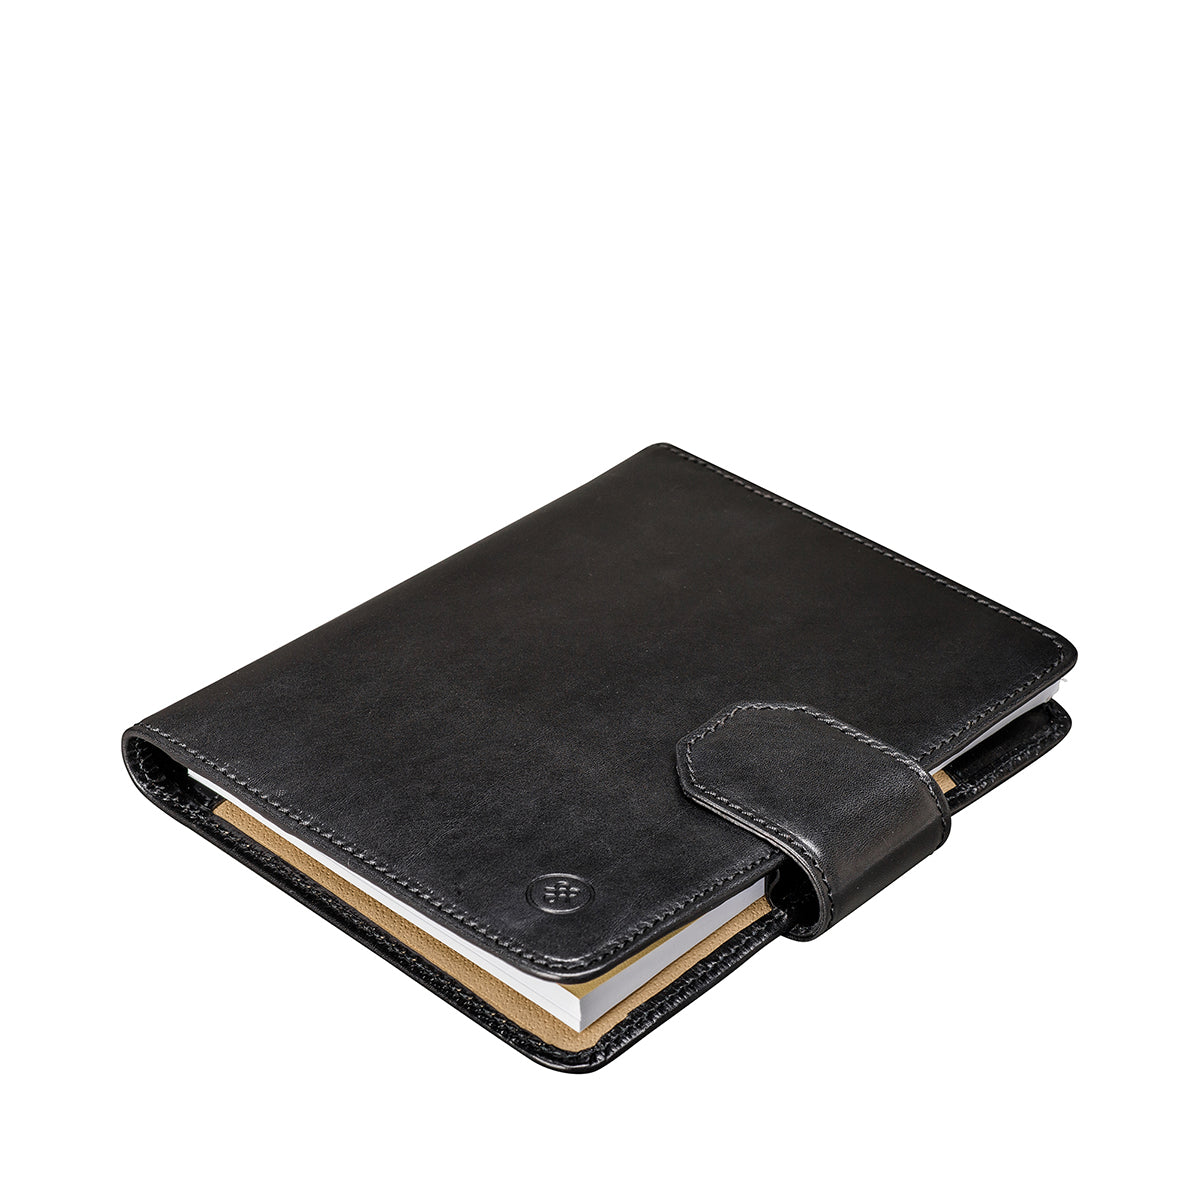 Image 3 of the 'Mozzano' Black Veg-Tanned Leather A5 Padfolio